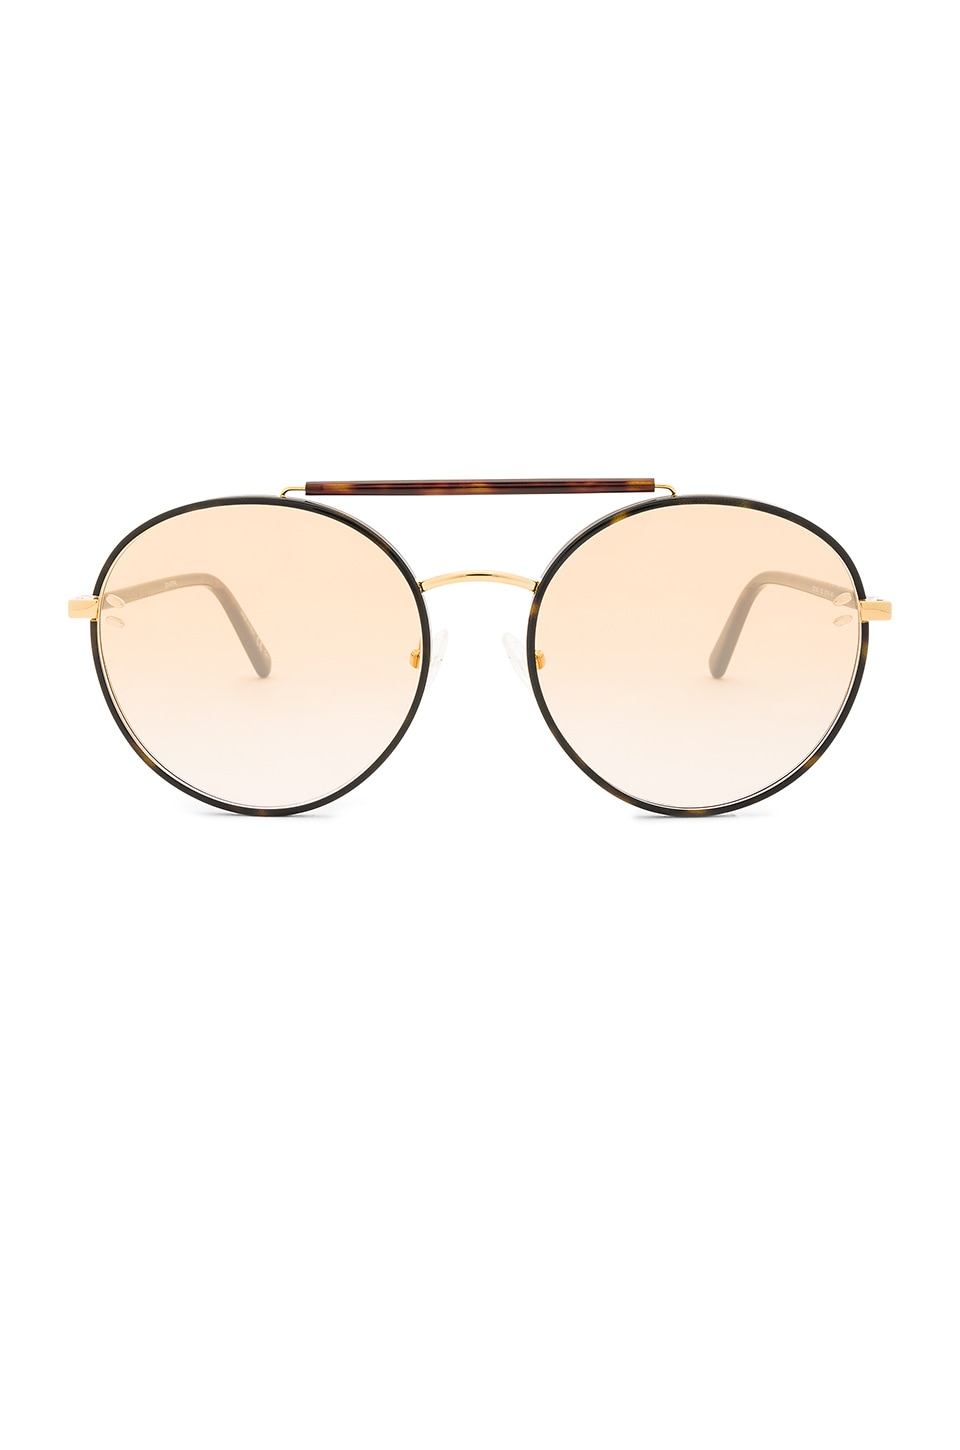 Stella McCartney Round Metal in Shiny Dark Havana & Gradient Orange